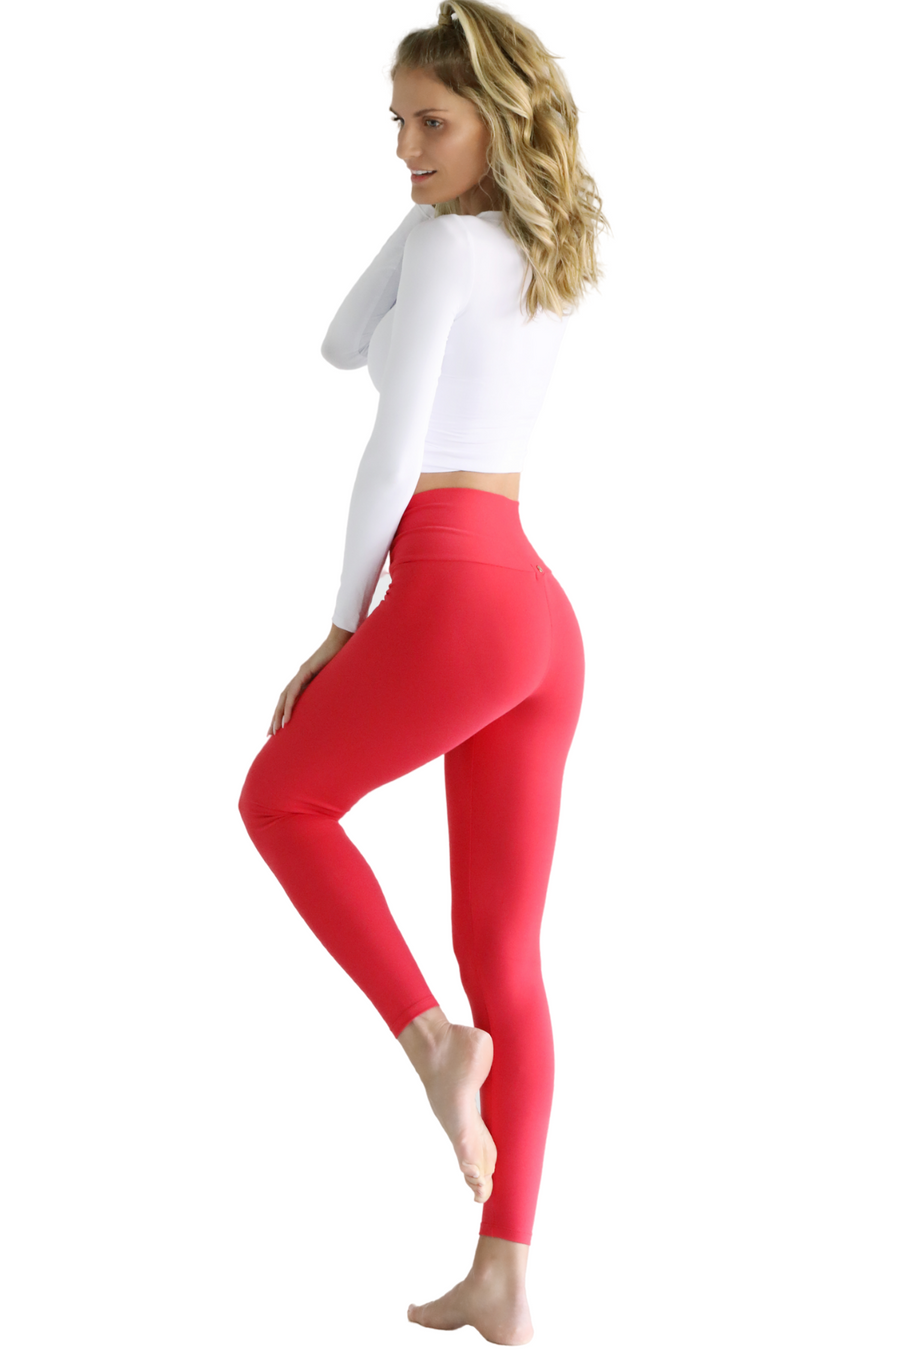 DANIELLA RED Activewear V Fold Legging